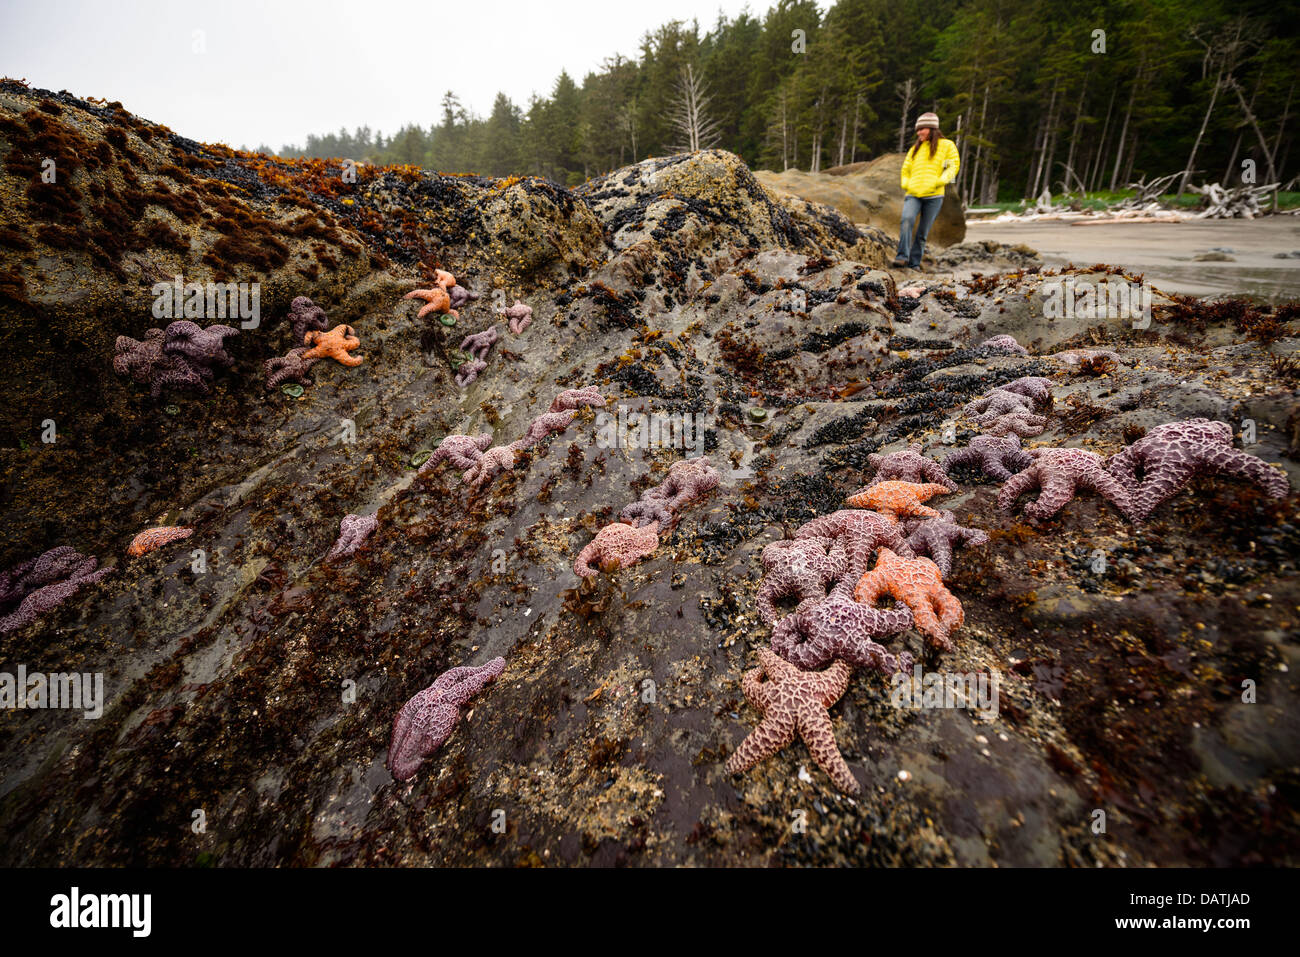 A woman looks at groups of Starfish along the Wilderness Coast at low tide in Olympic National Park in WA, USA - Stock Image